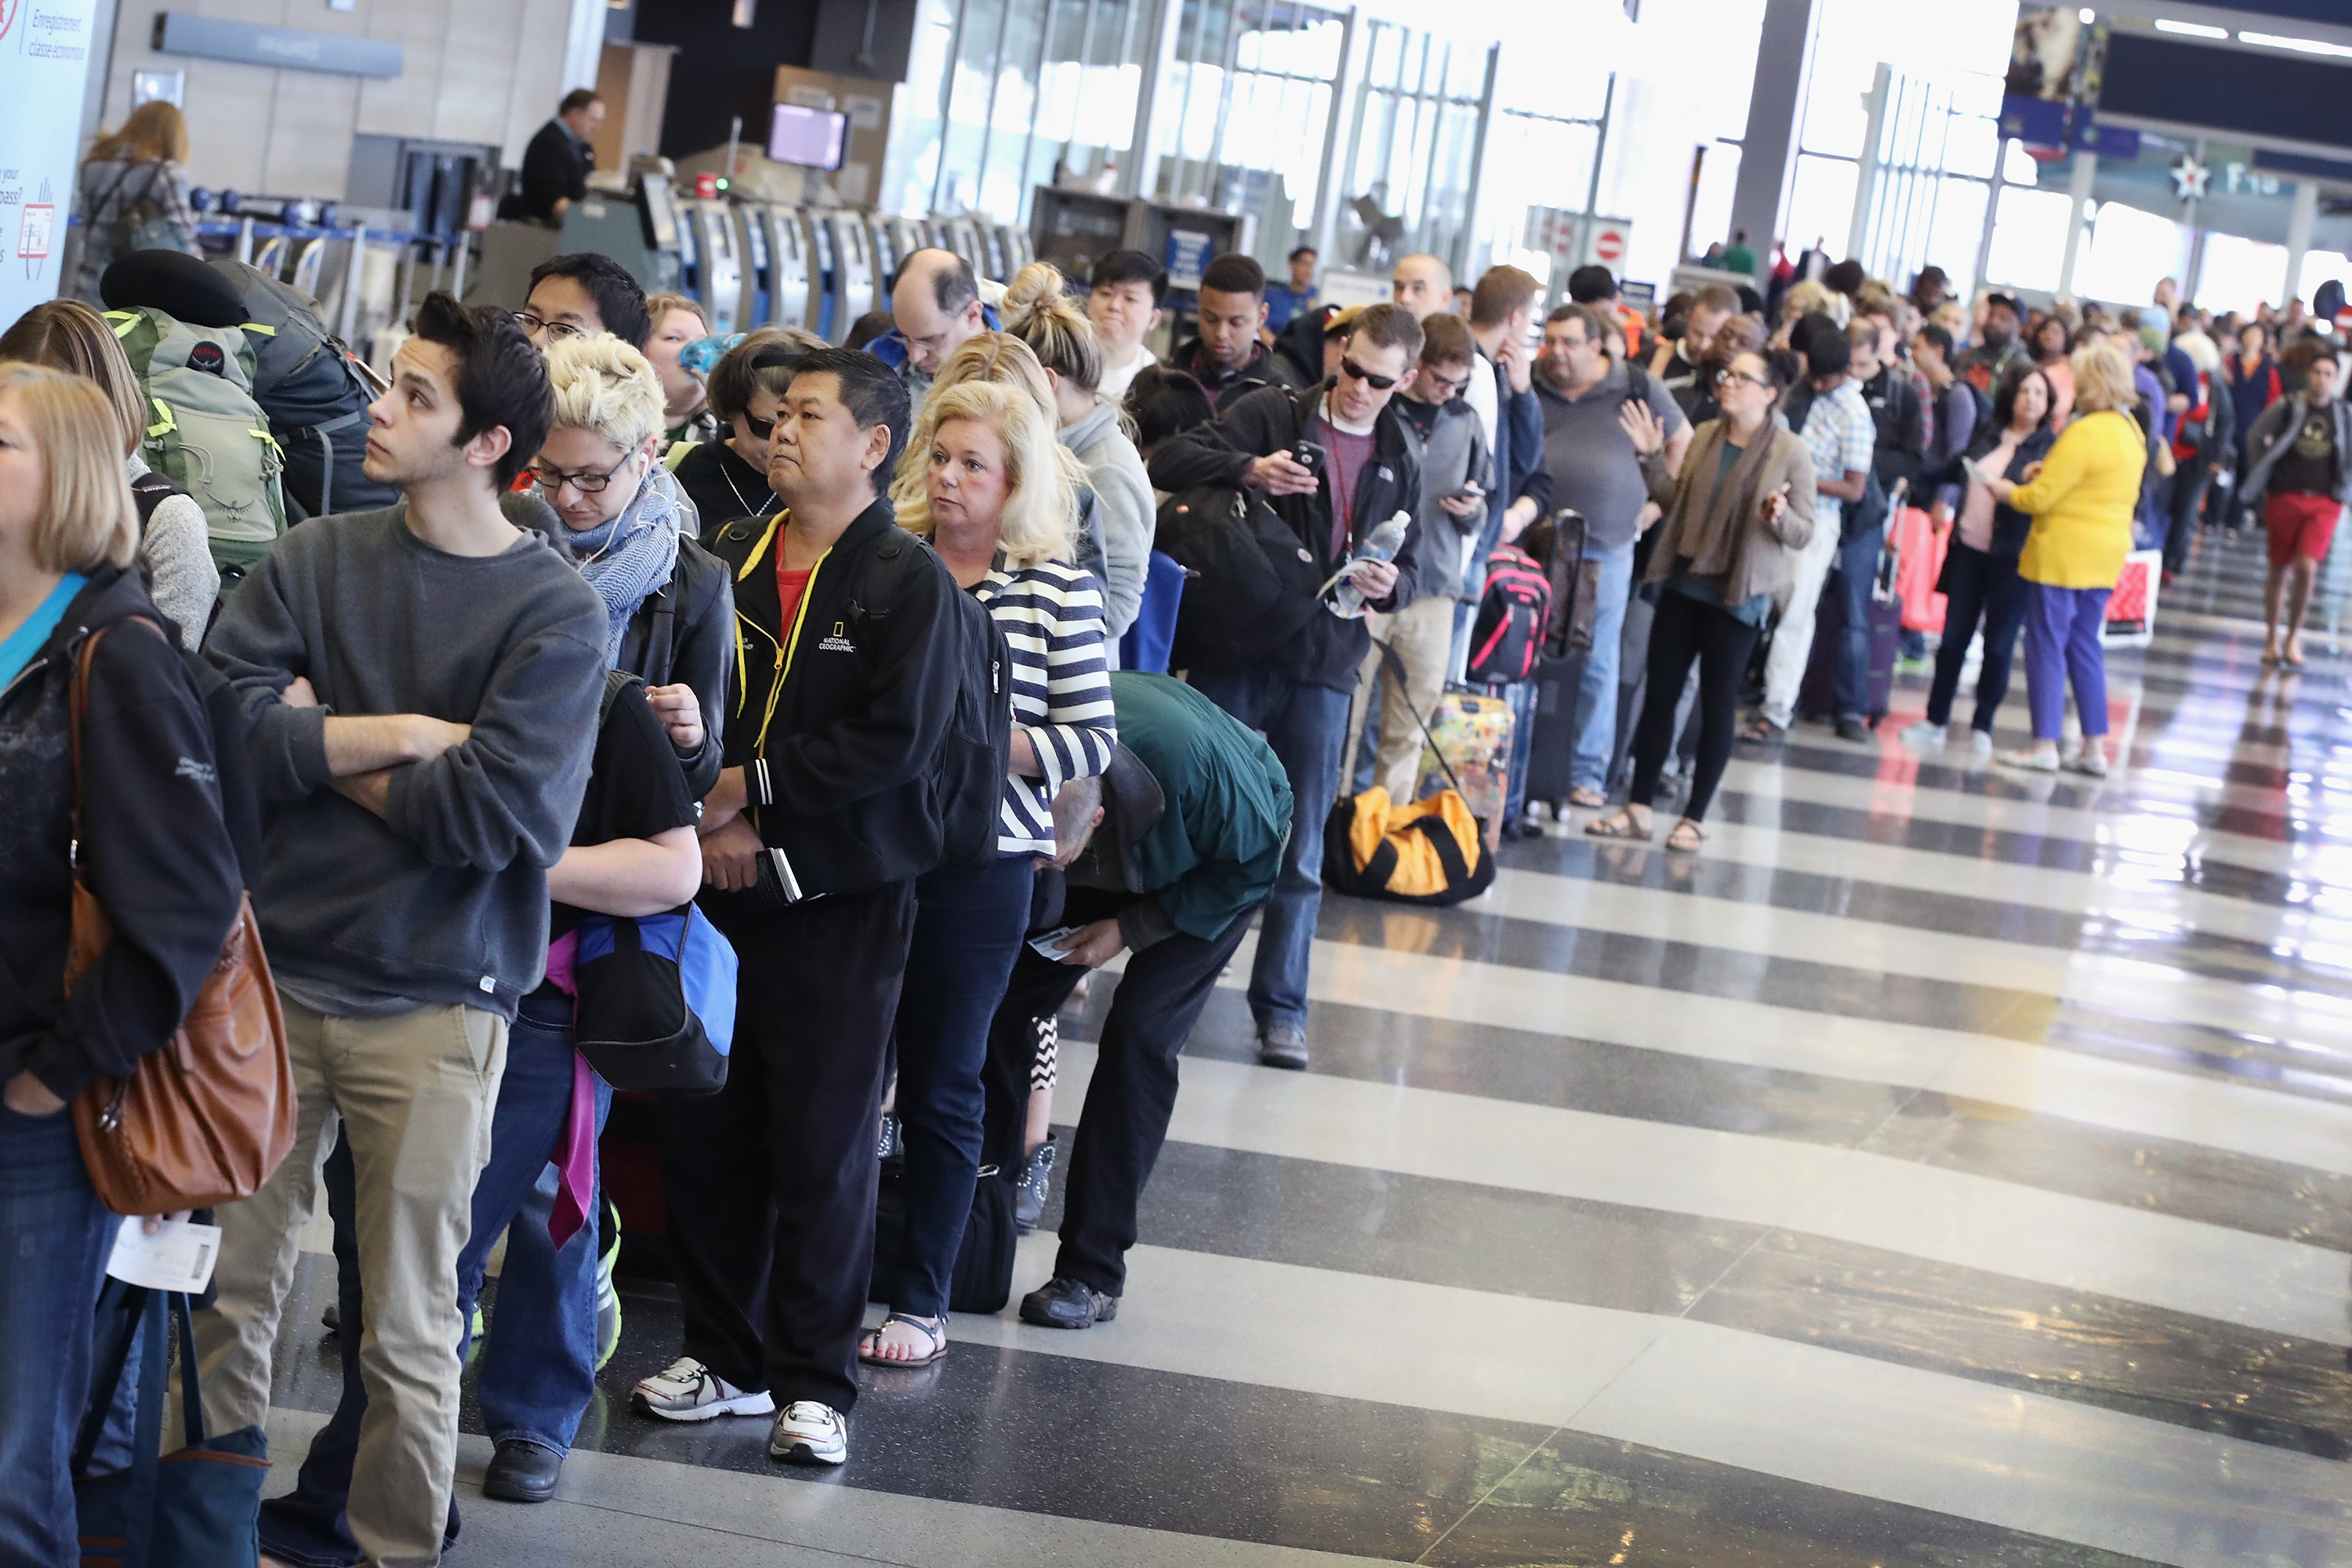 Passengers at O'Hare International Airport await TSA screening